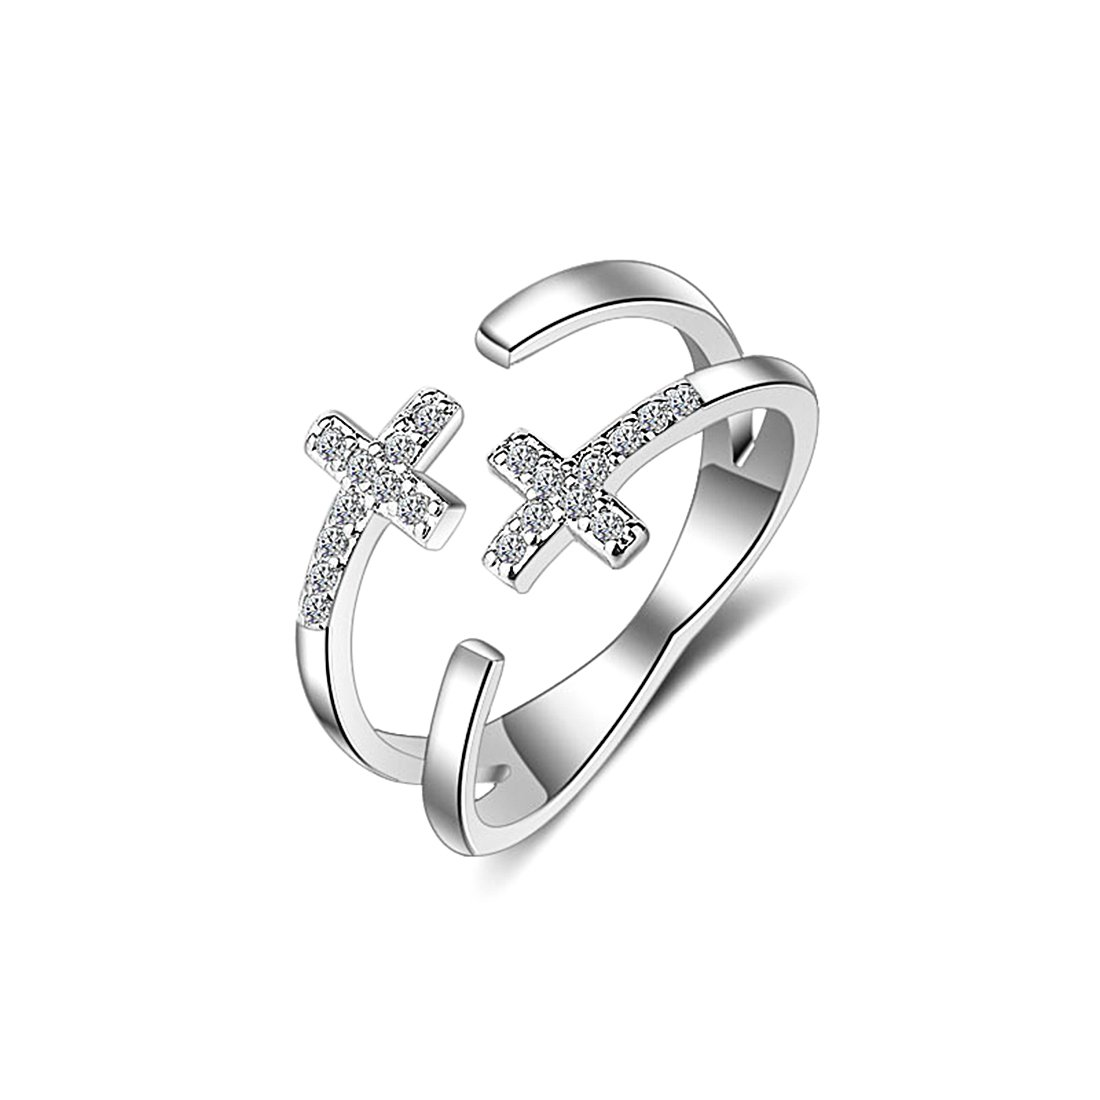 NEOWOO Cross Religious Ring Sterling Silver Cubic Zirconia Sideways CZ Open Adjustable Band Ring Gift